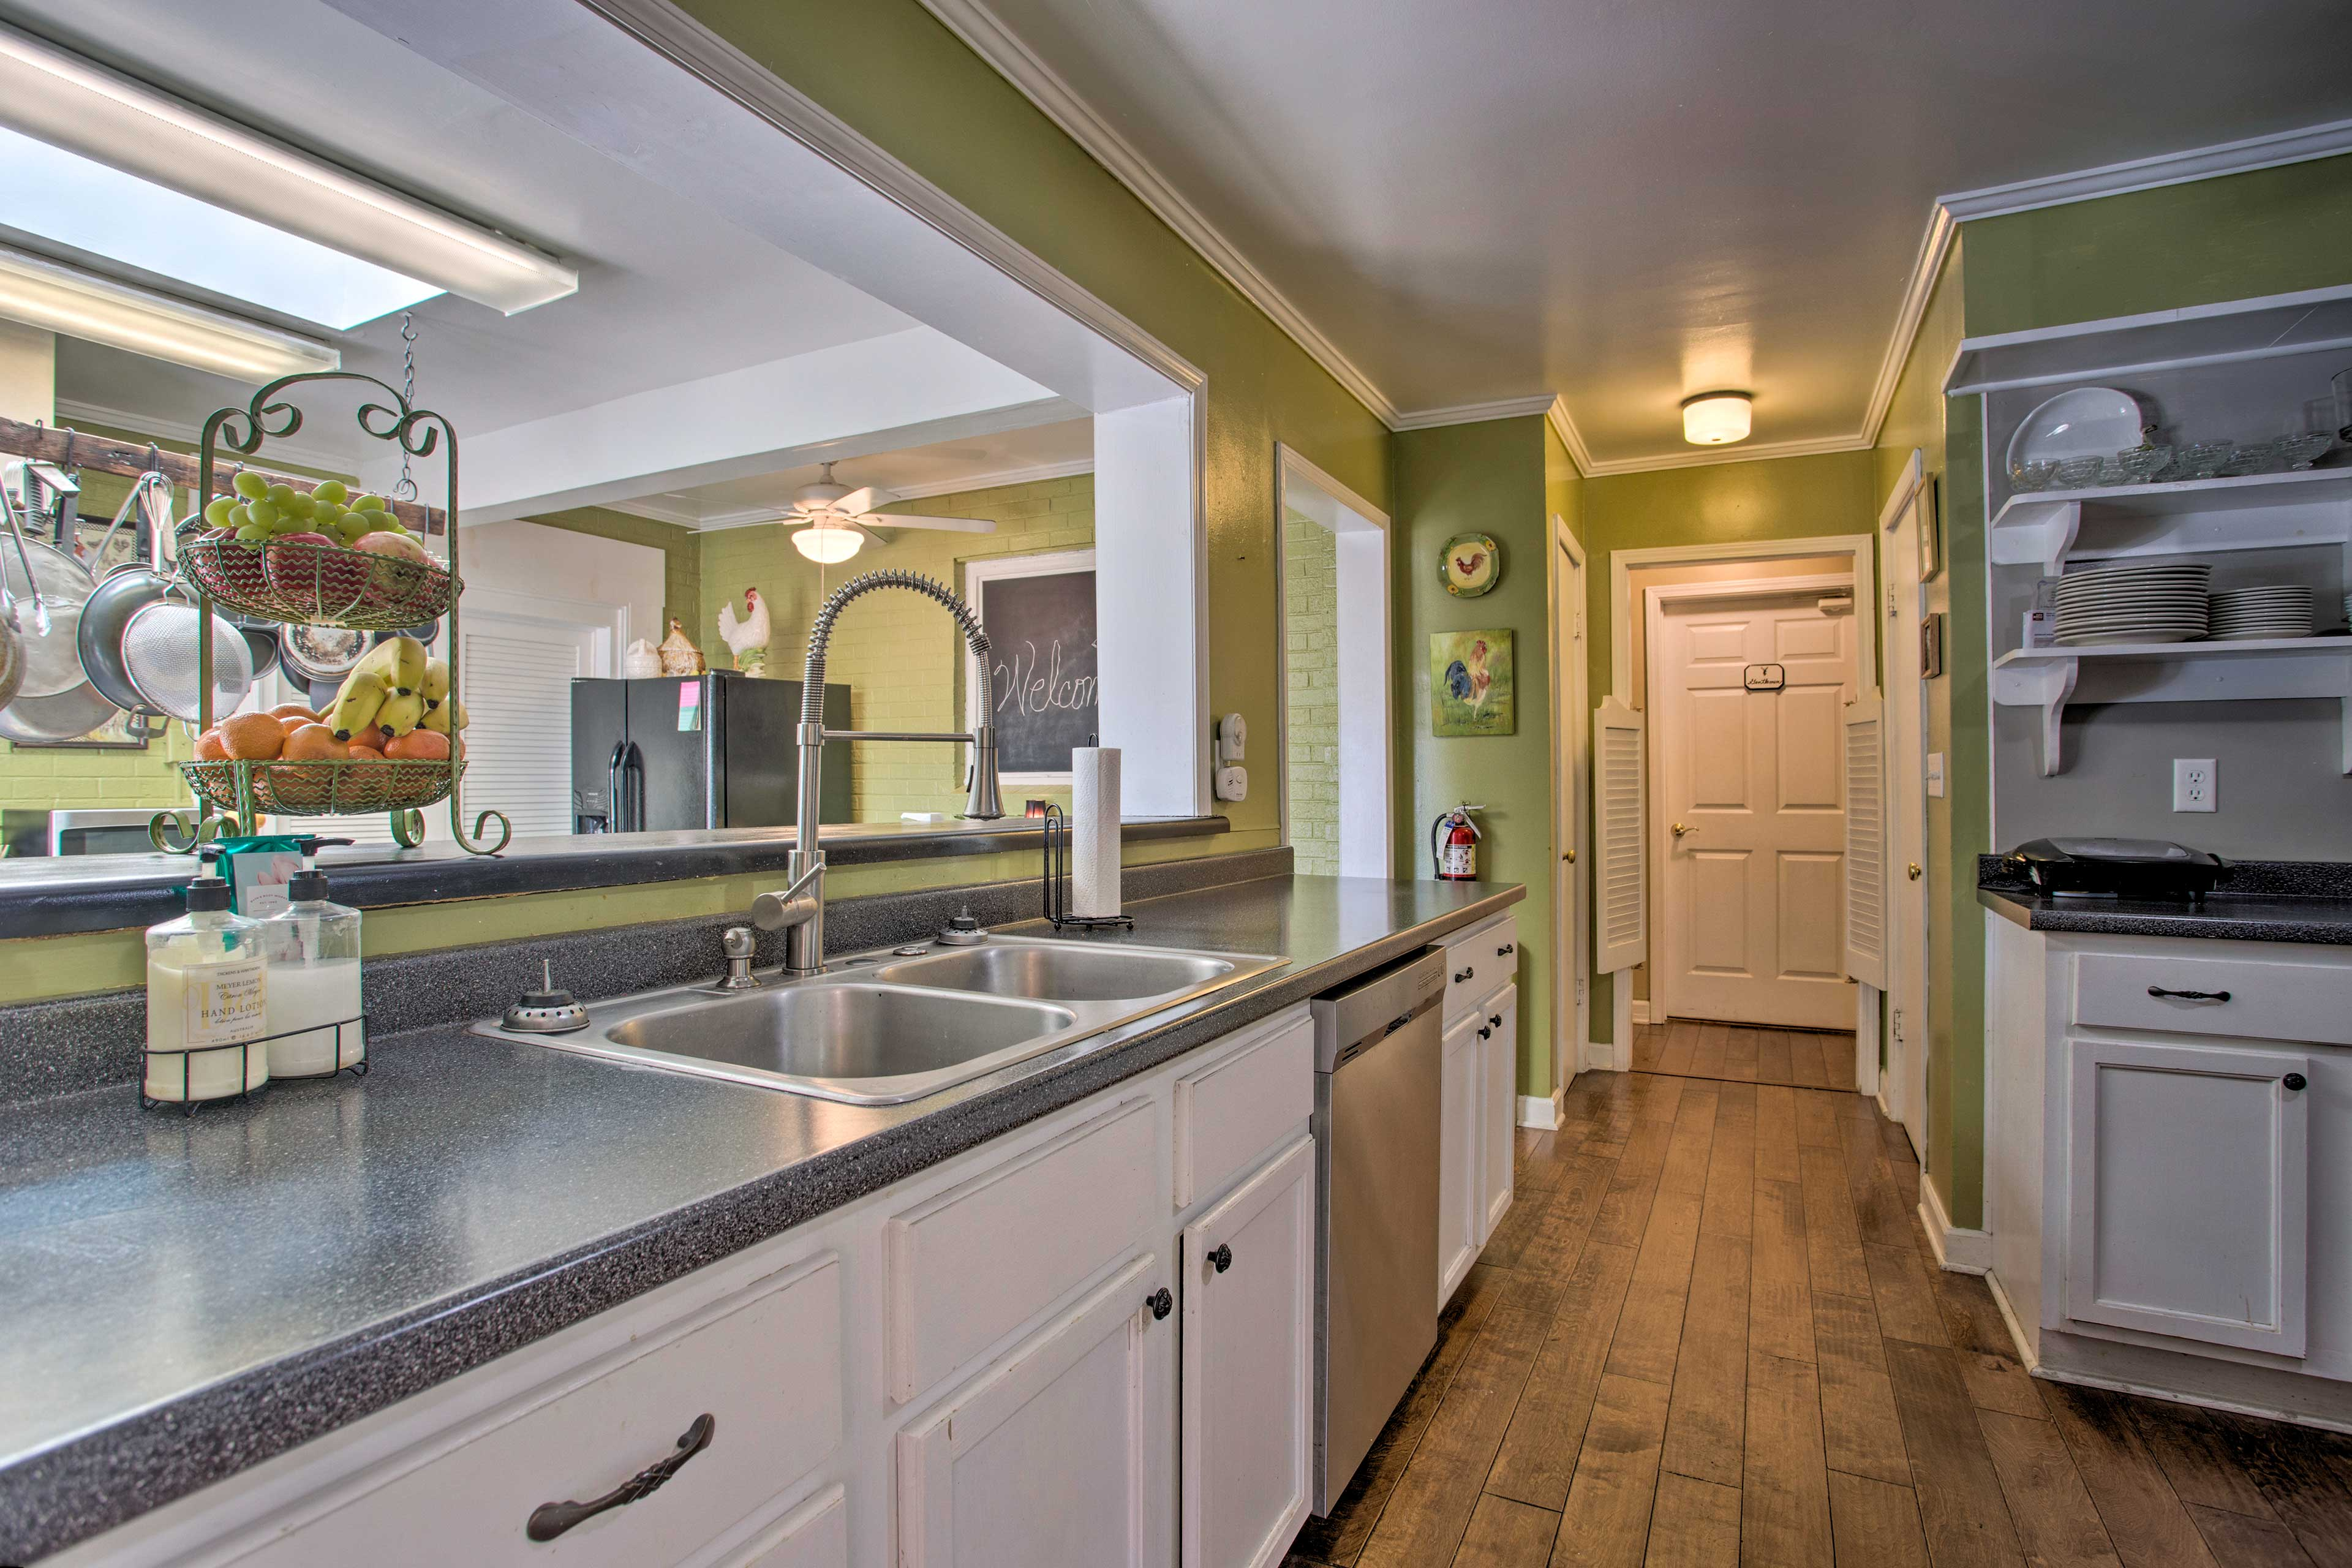 Plenty of counter space for cooking big meals!